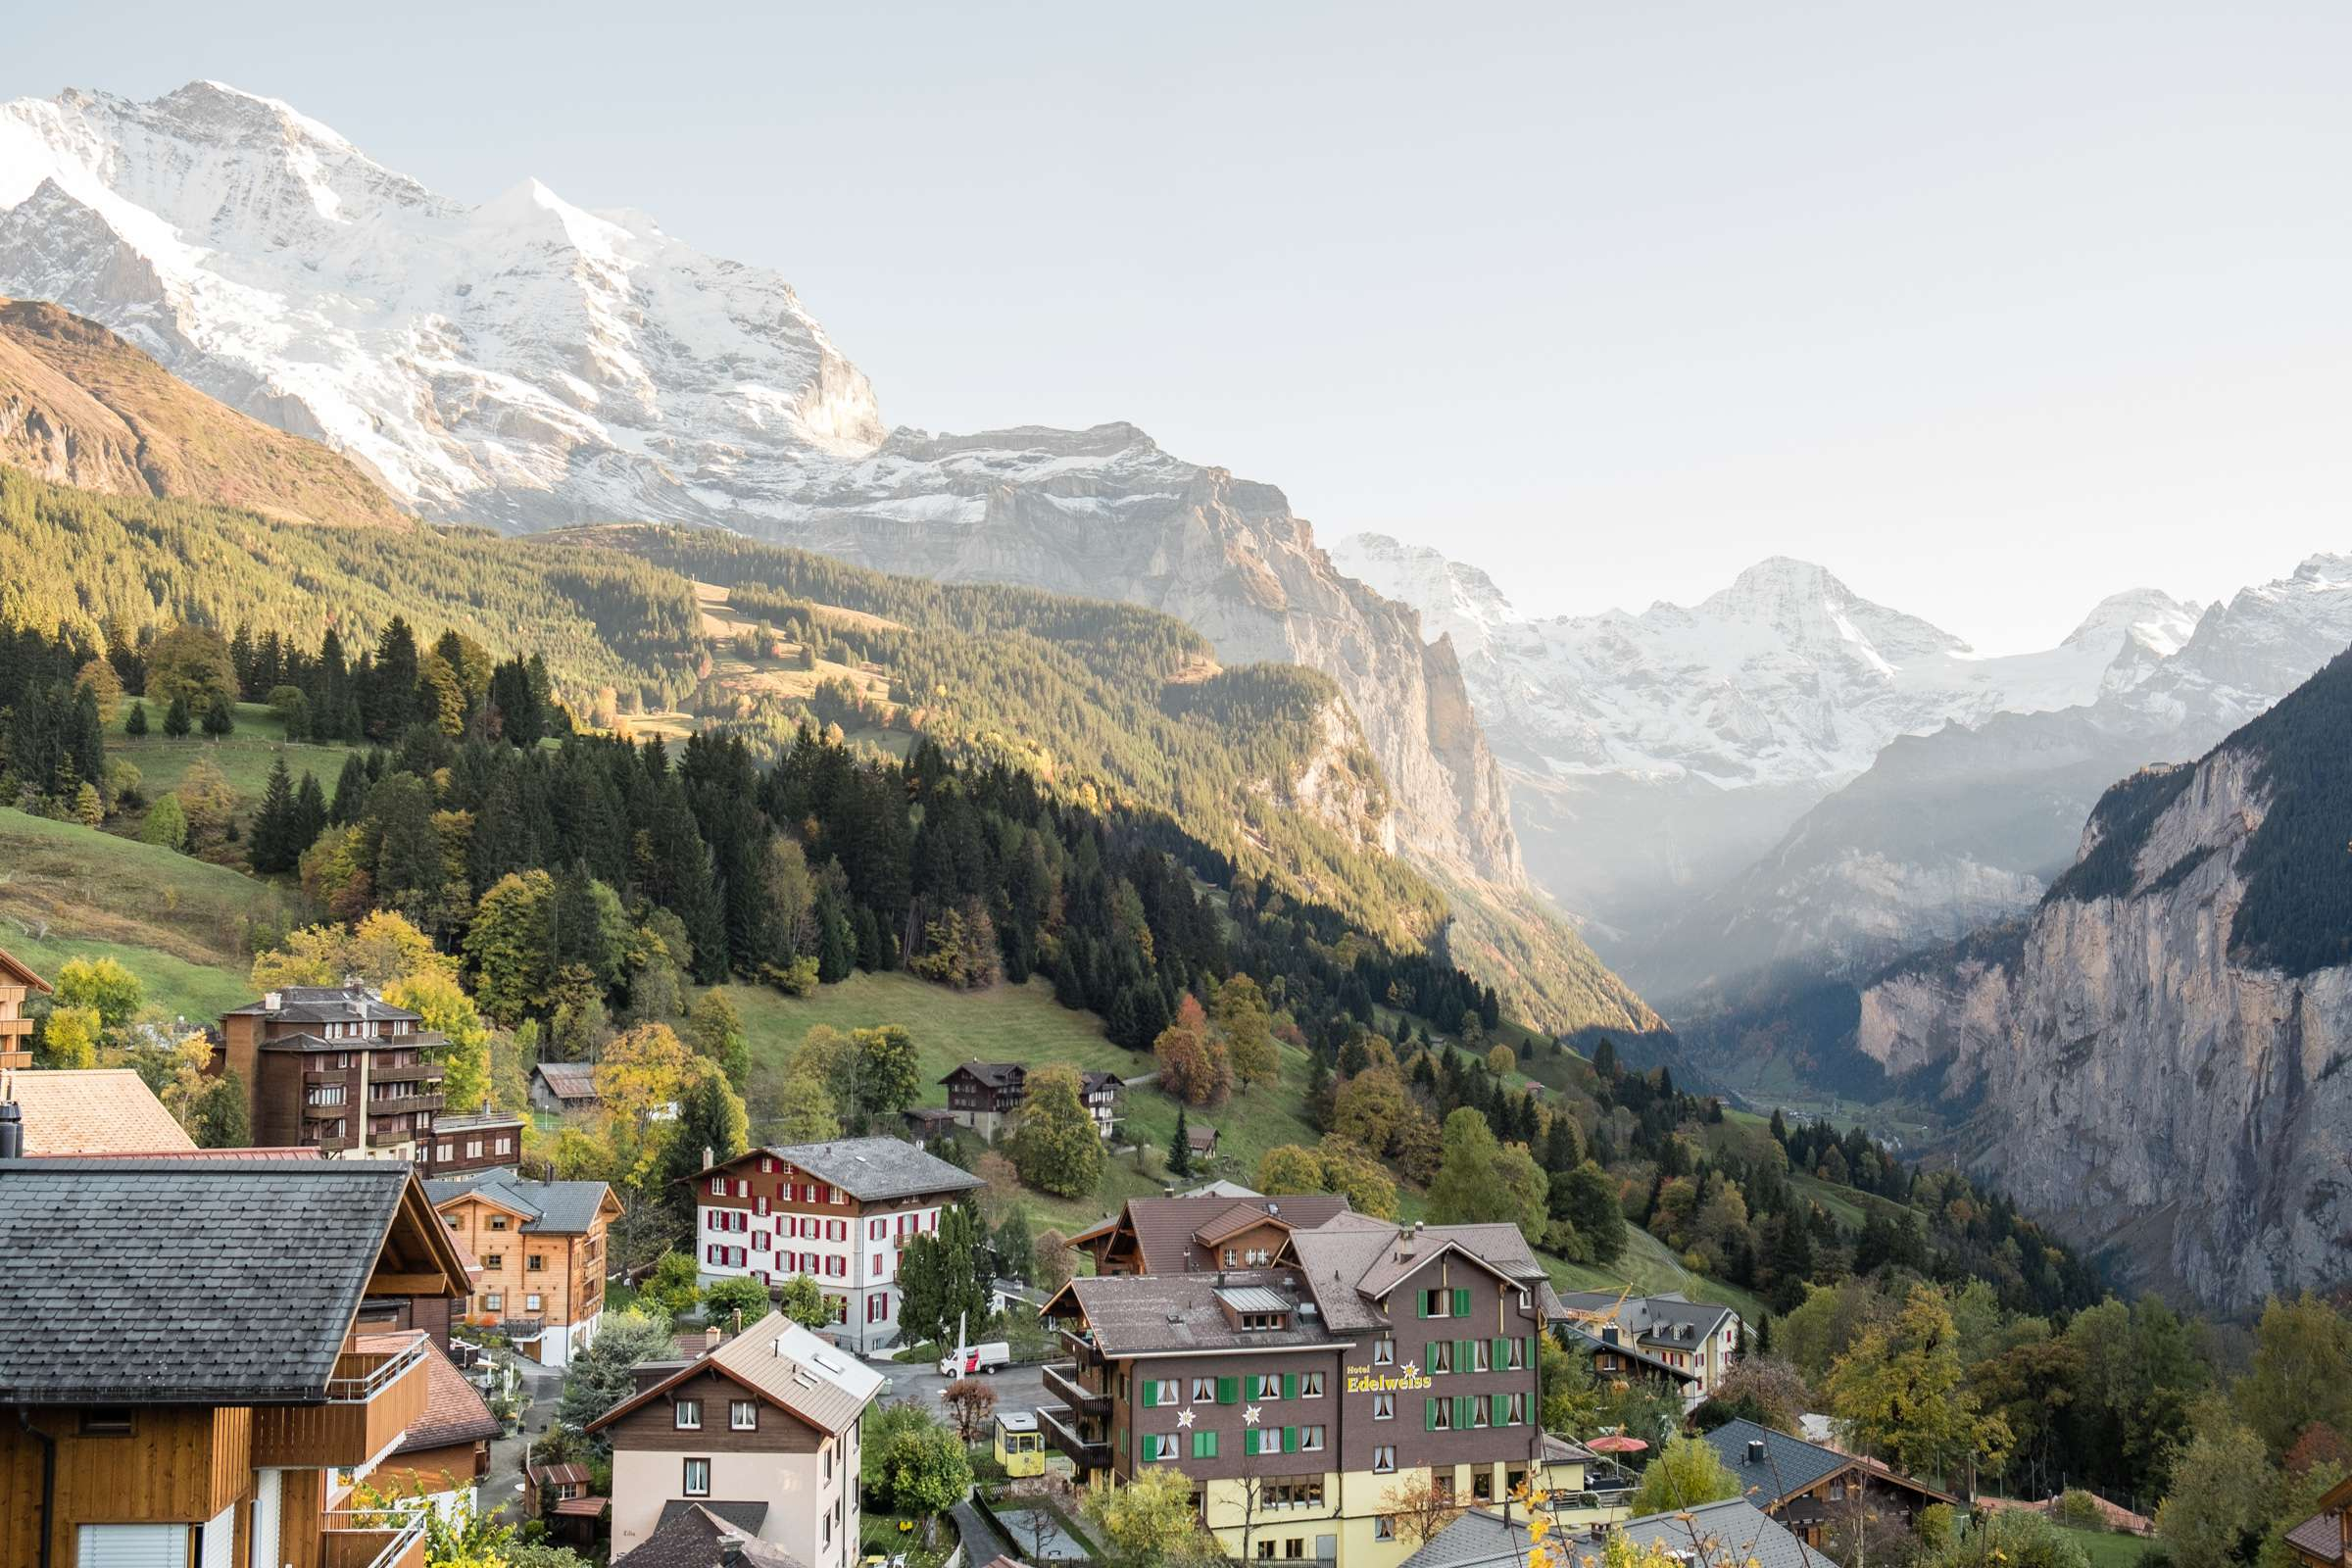 Sunset over Wengen